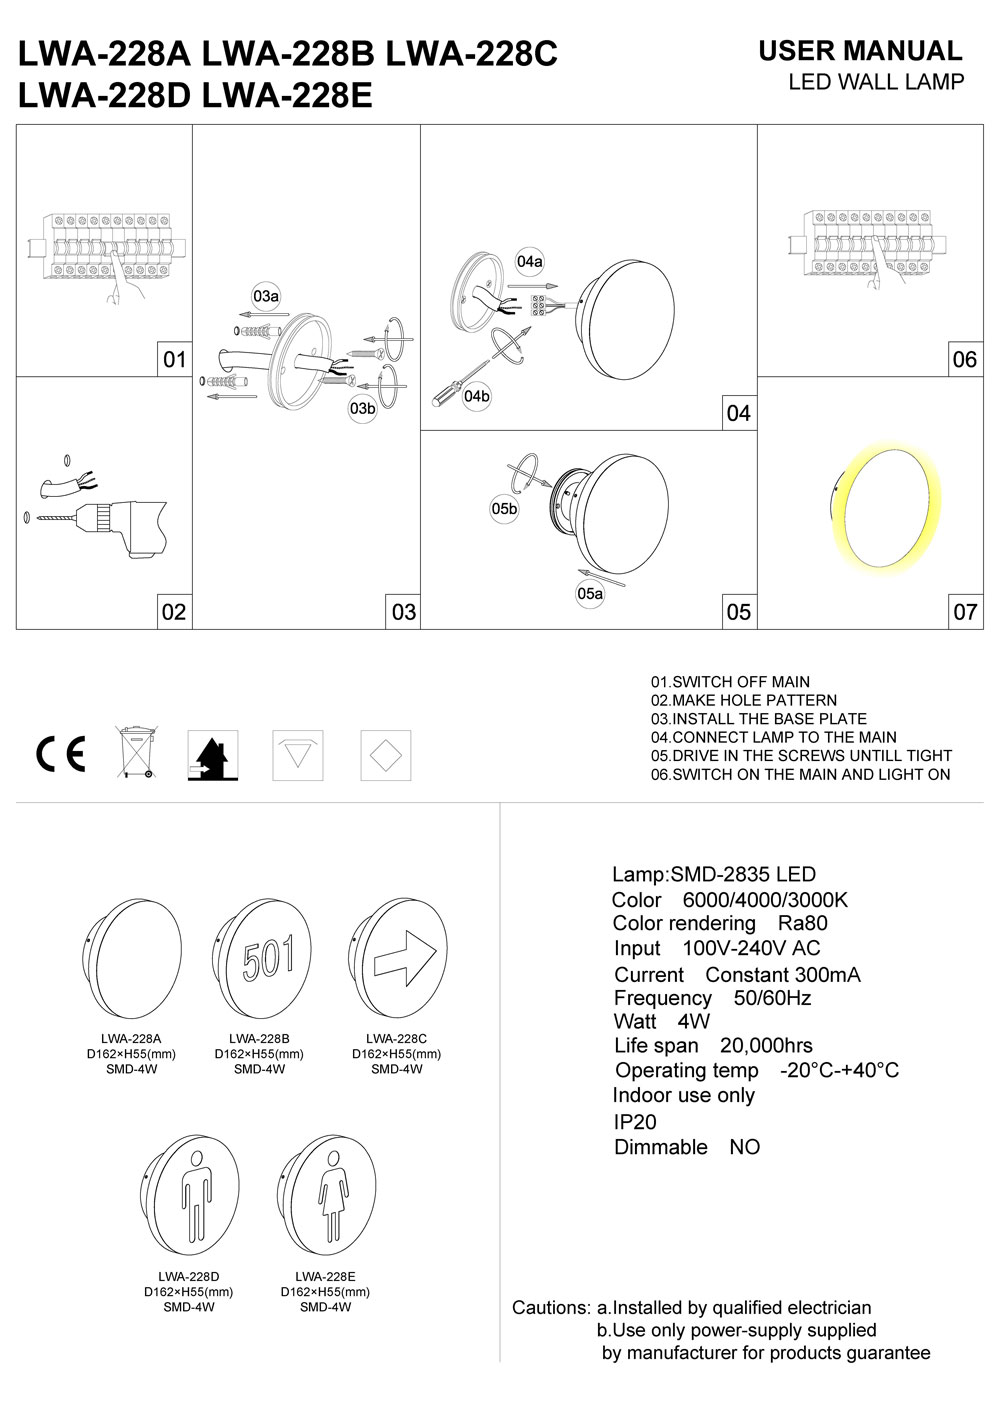 LWA228 Interior LED wall light installation guide